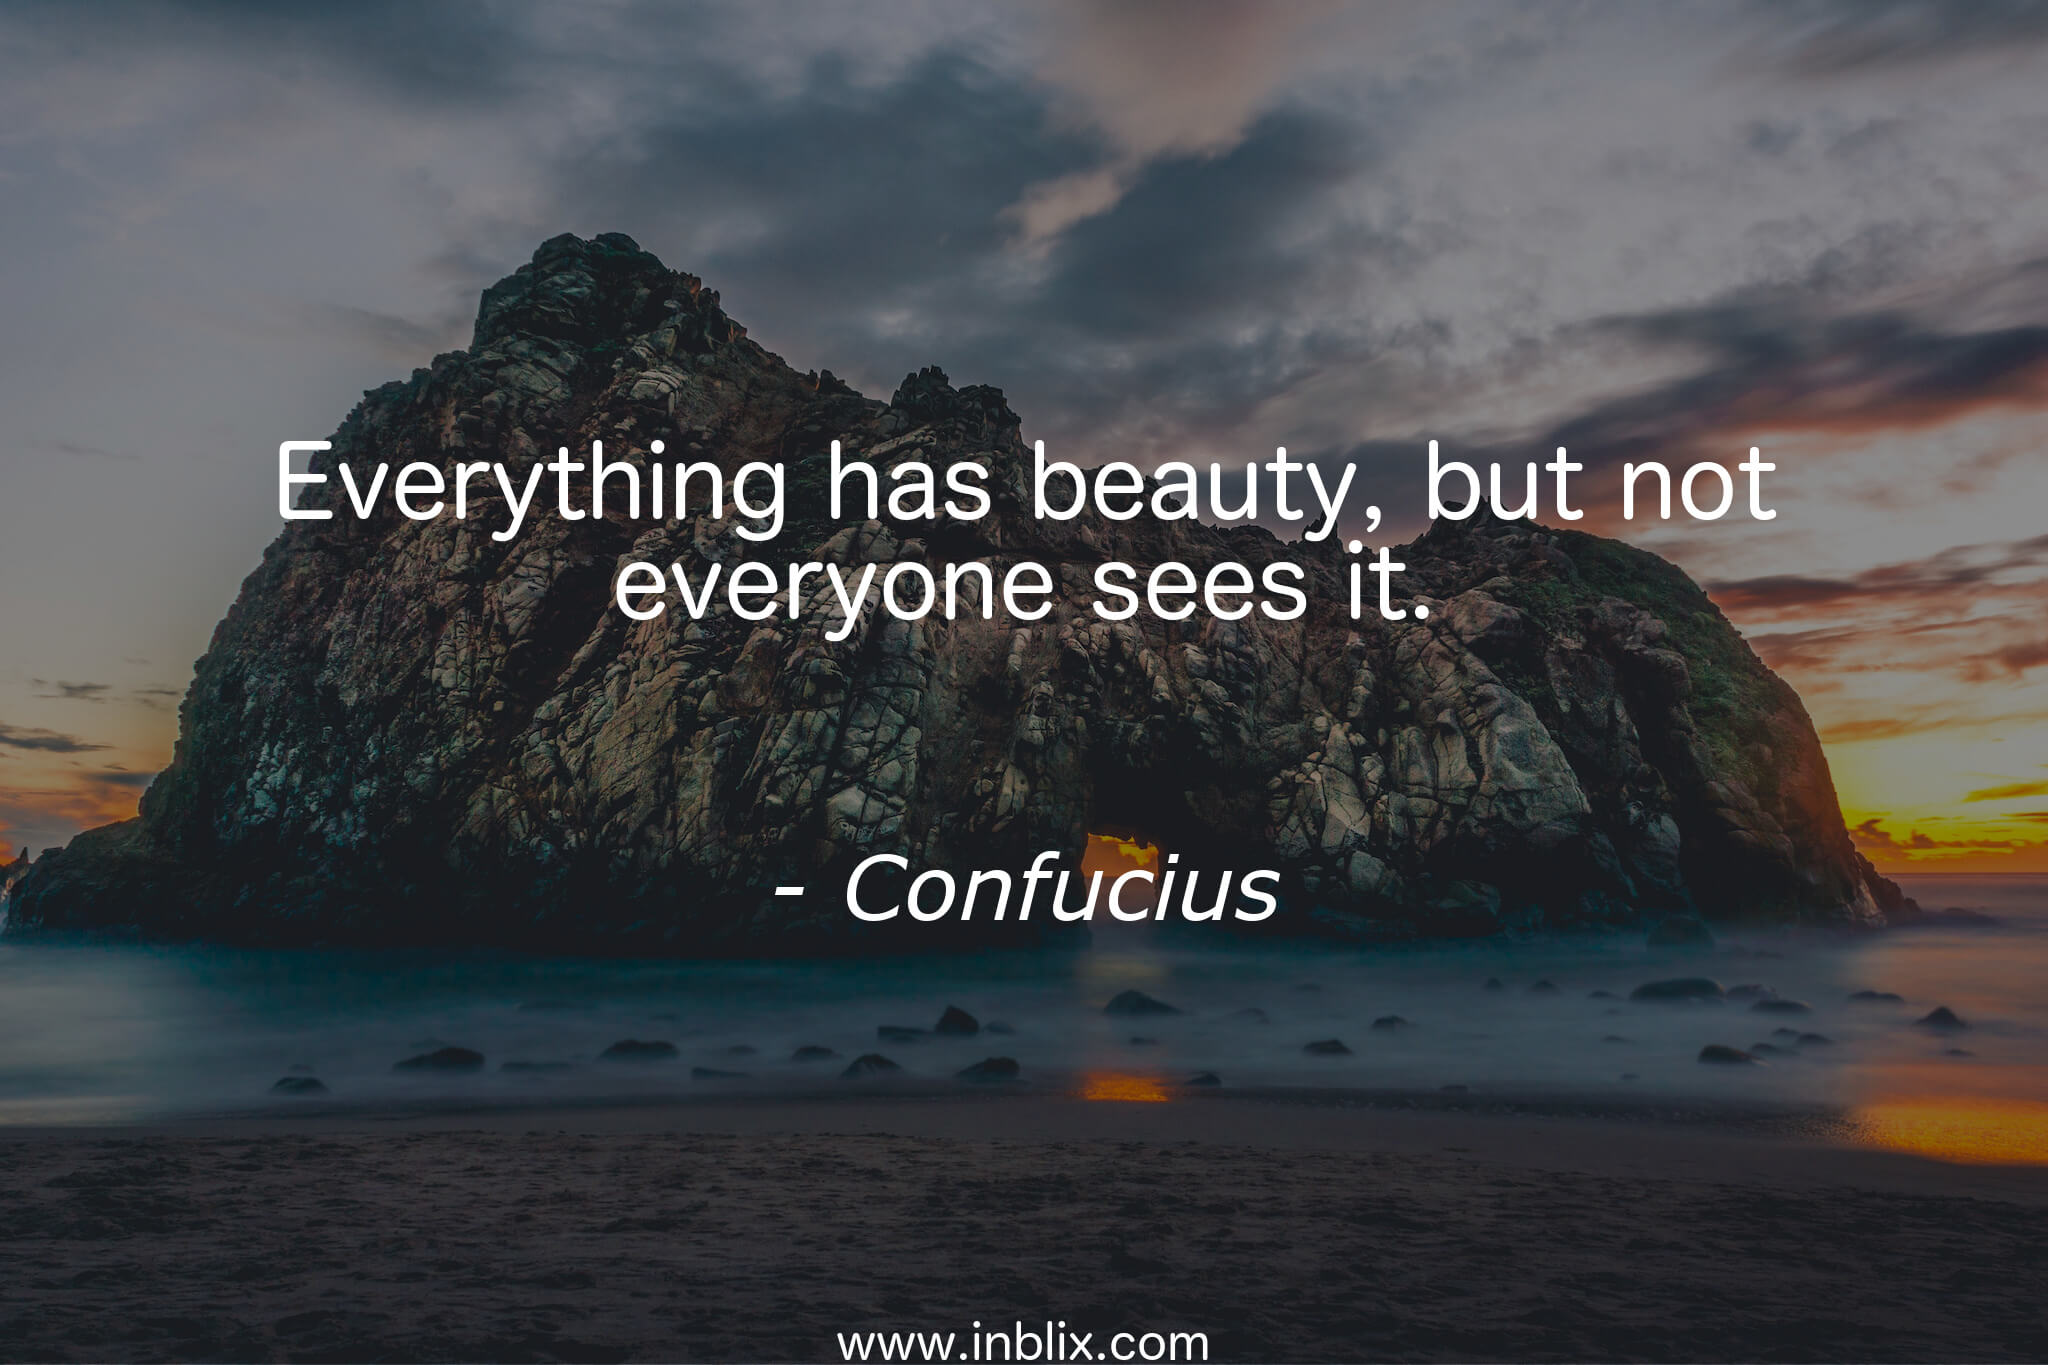 Everything has beauty, but not everyone sees it.